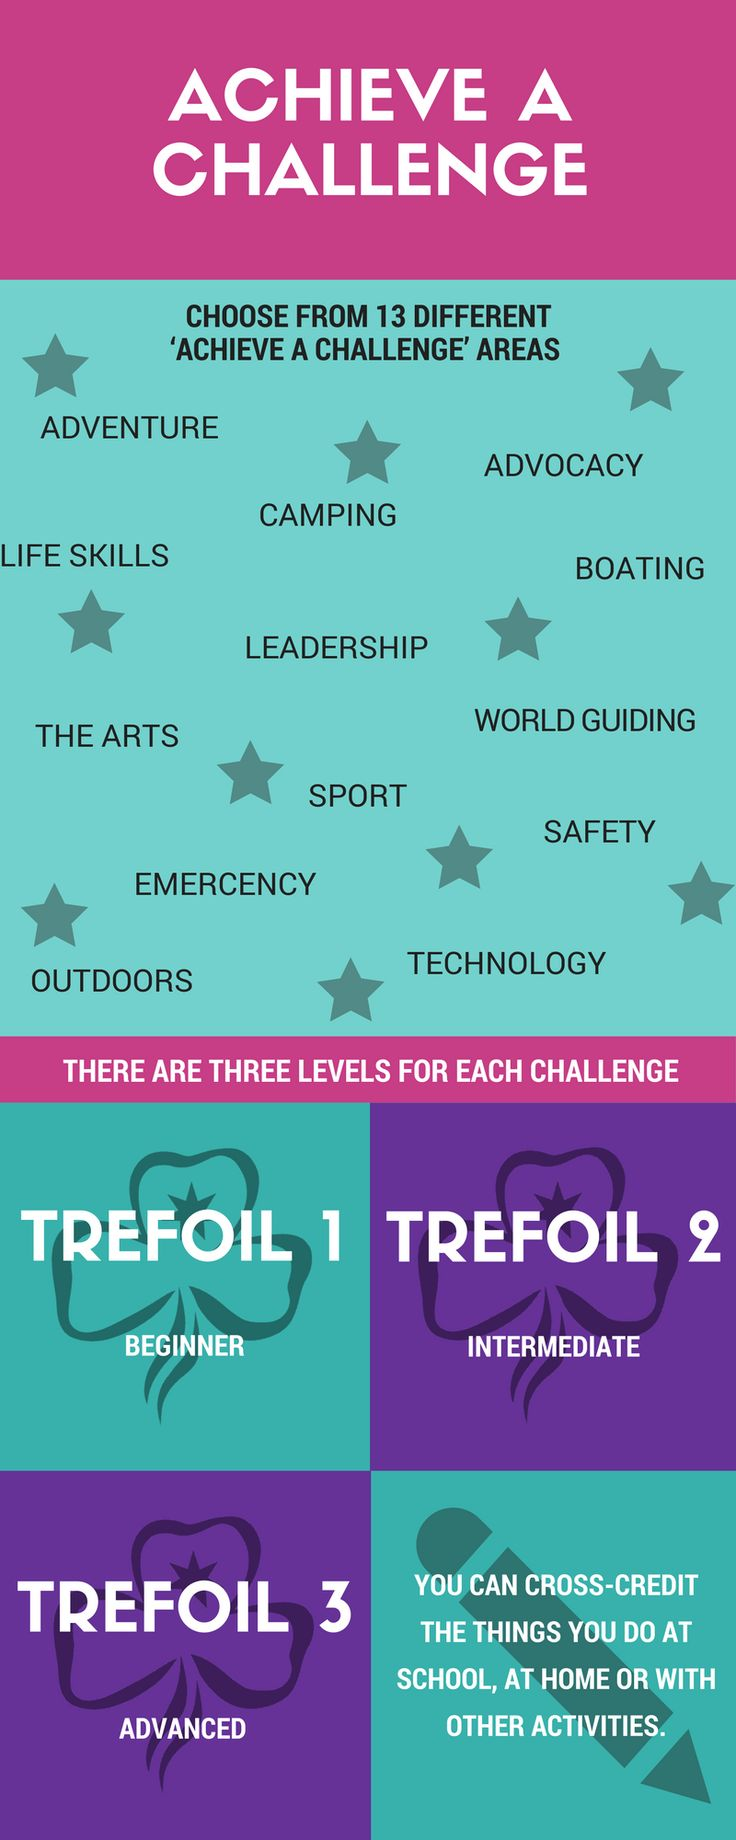 'Achieve a Challenge' badges  are designed to recognise the skills and abilities of the individual.  There are three levels for each challenge:  Trefoil 1 - Beginner Trefoil 2 - Intermediate  Trefoil 3 - Advanced  These challenges may also be used towards the Awards in the Aim High book.